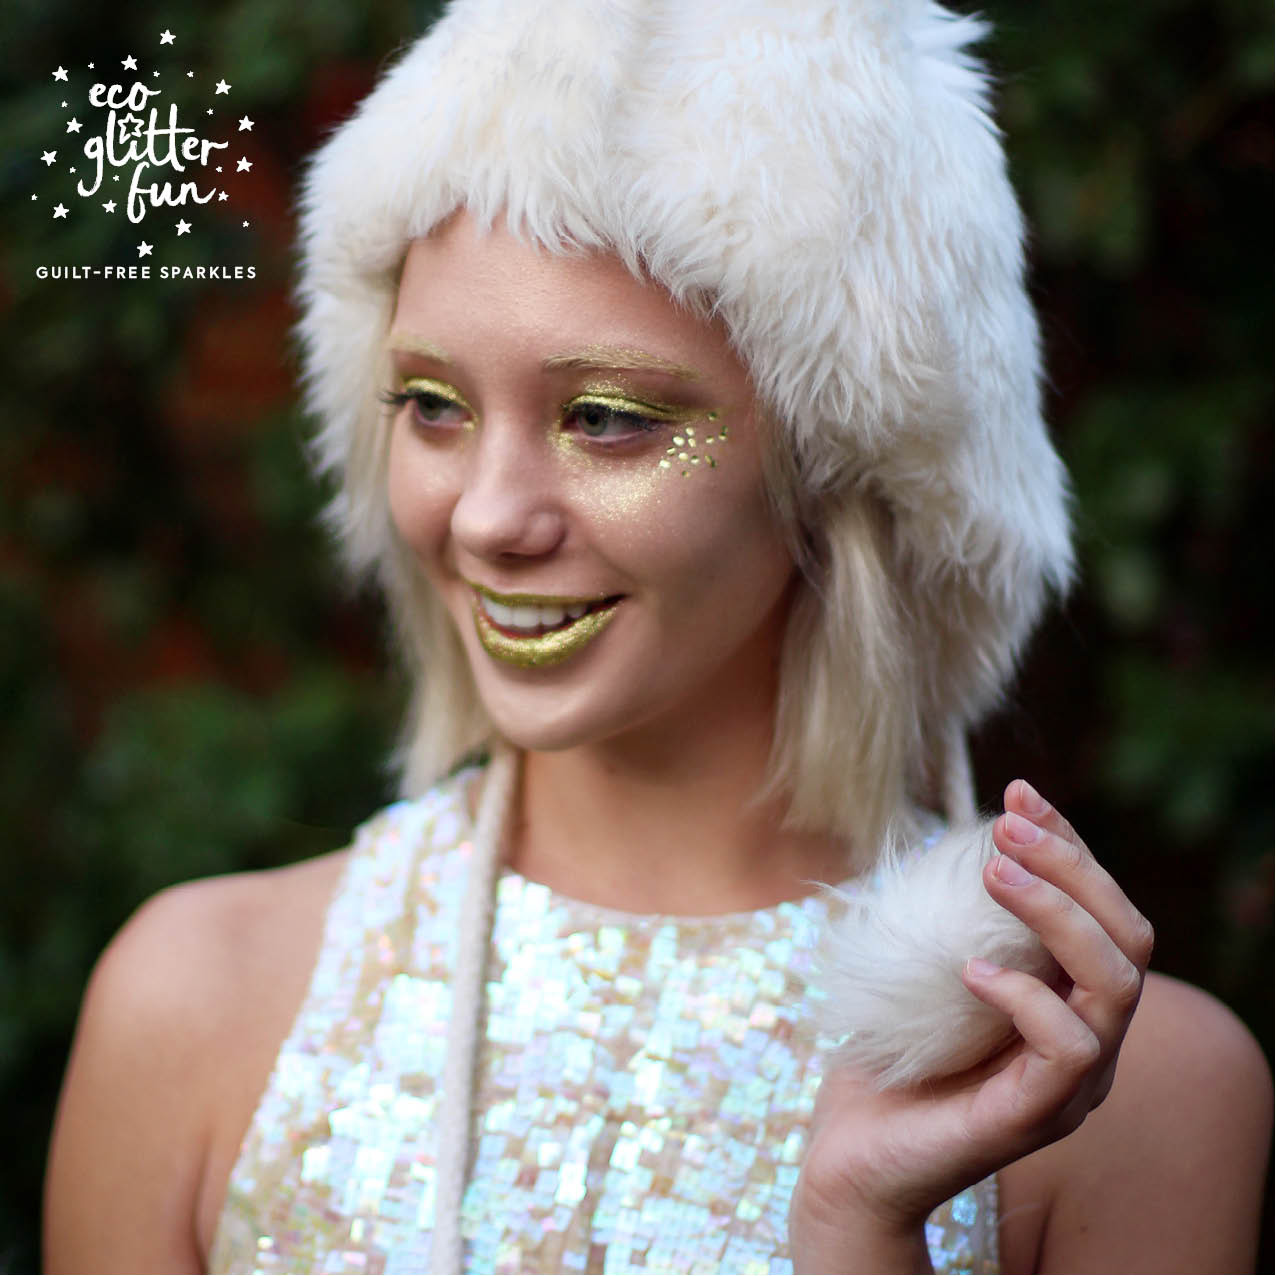 Golden Goddess with gold glitter eyes from Eco Glitter Fun and Beyond Retro outfit.